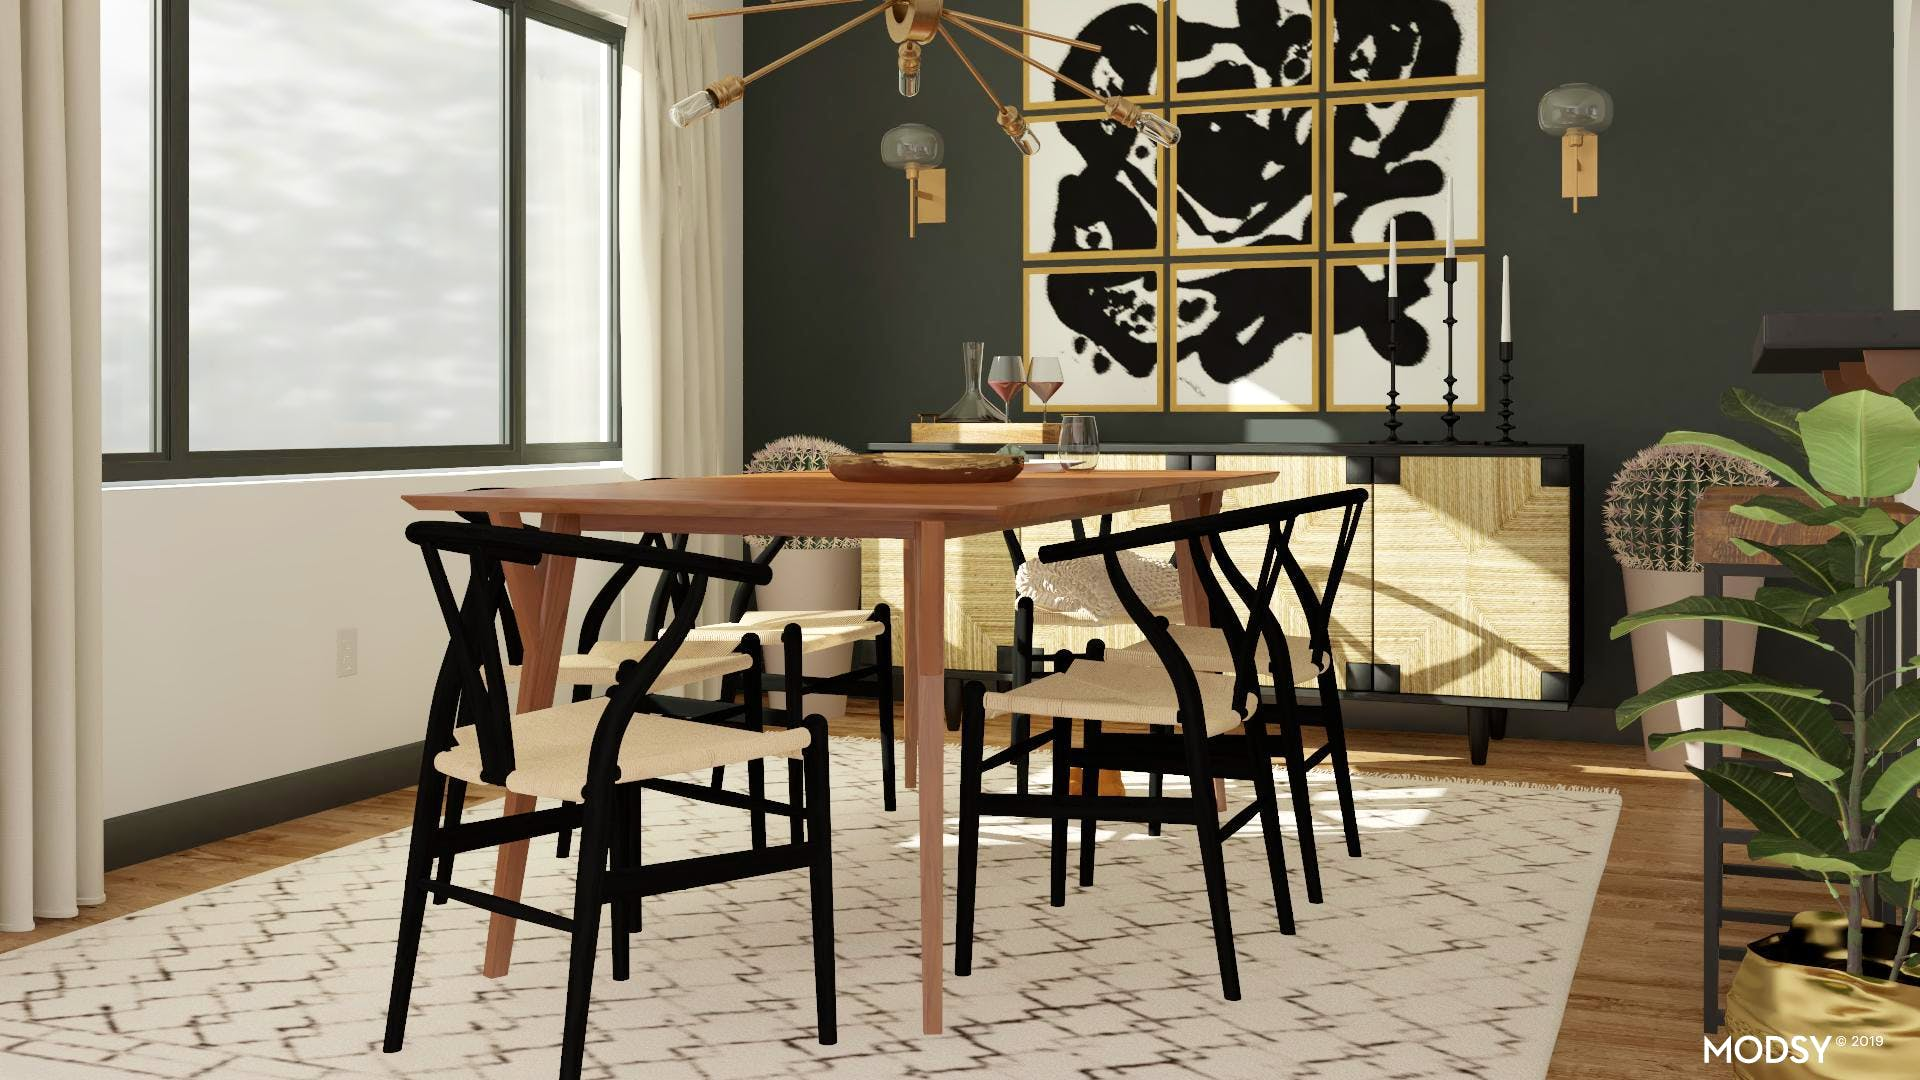 Mid-Century Modern Dining Room With Black & White